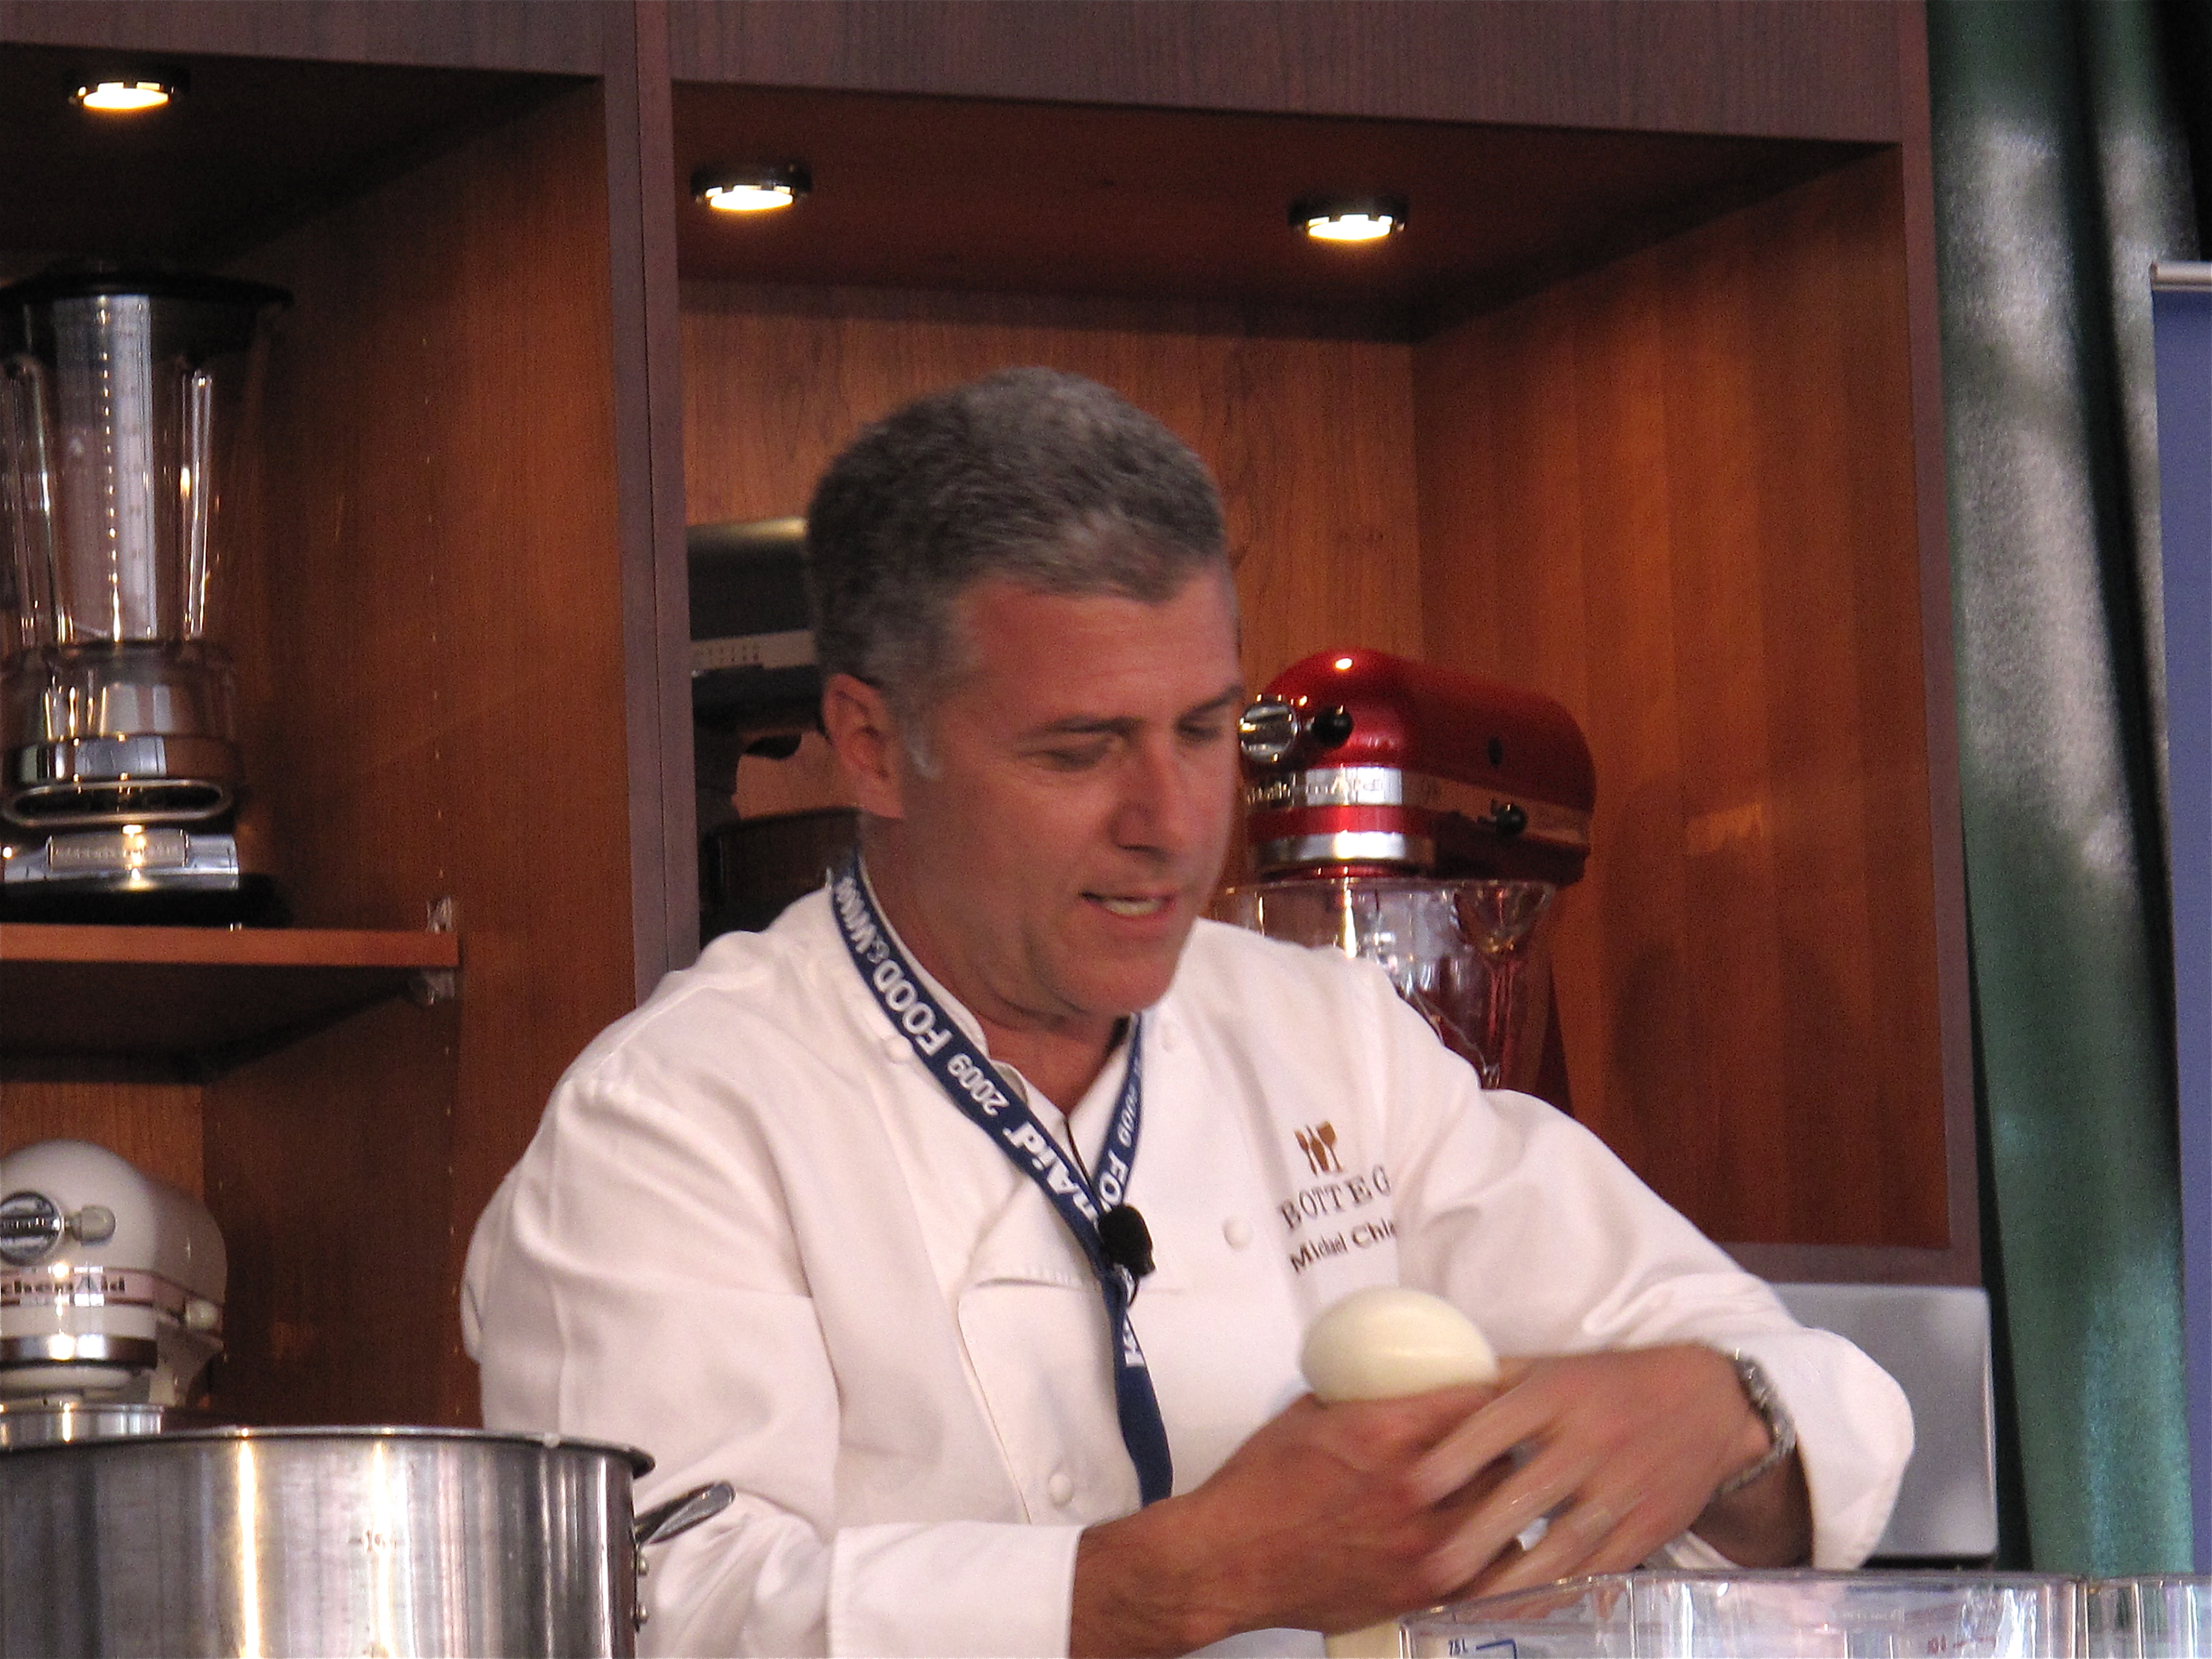 Michael Chiarello making a fresh mozzarella ball.